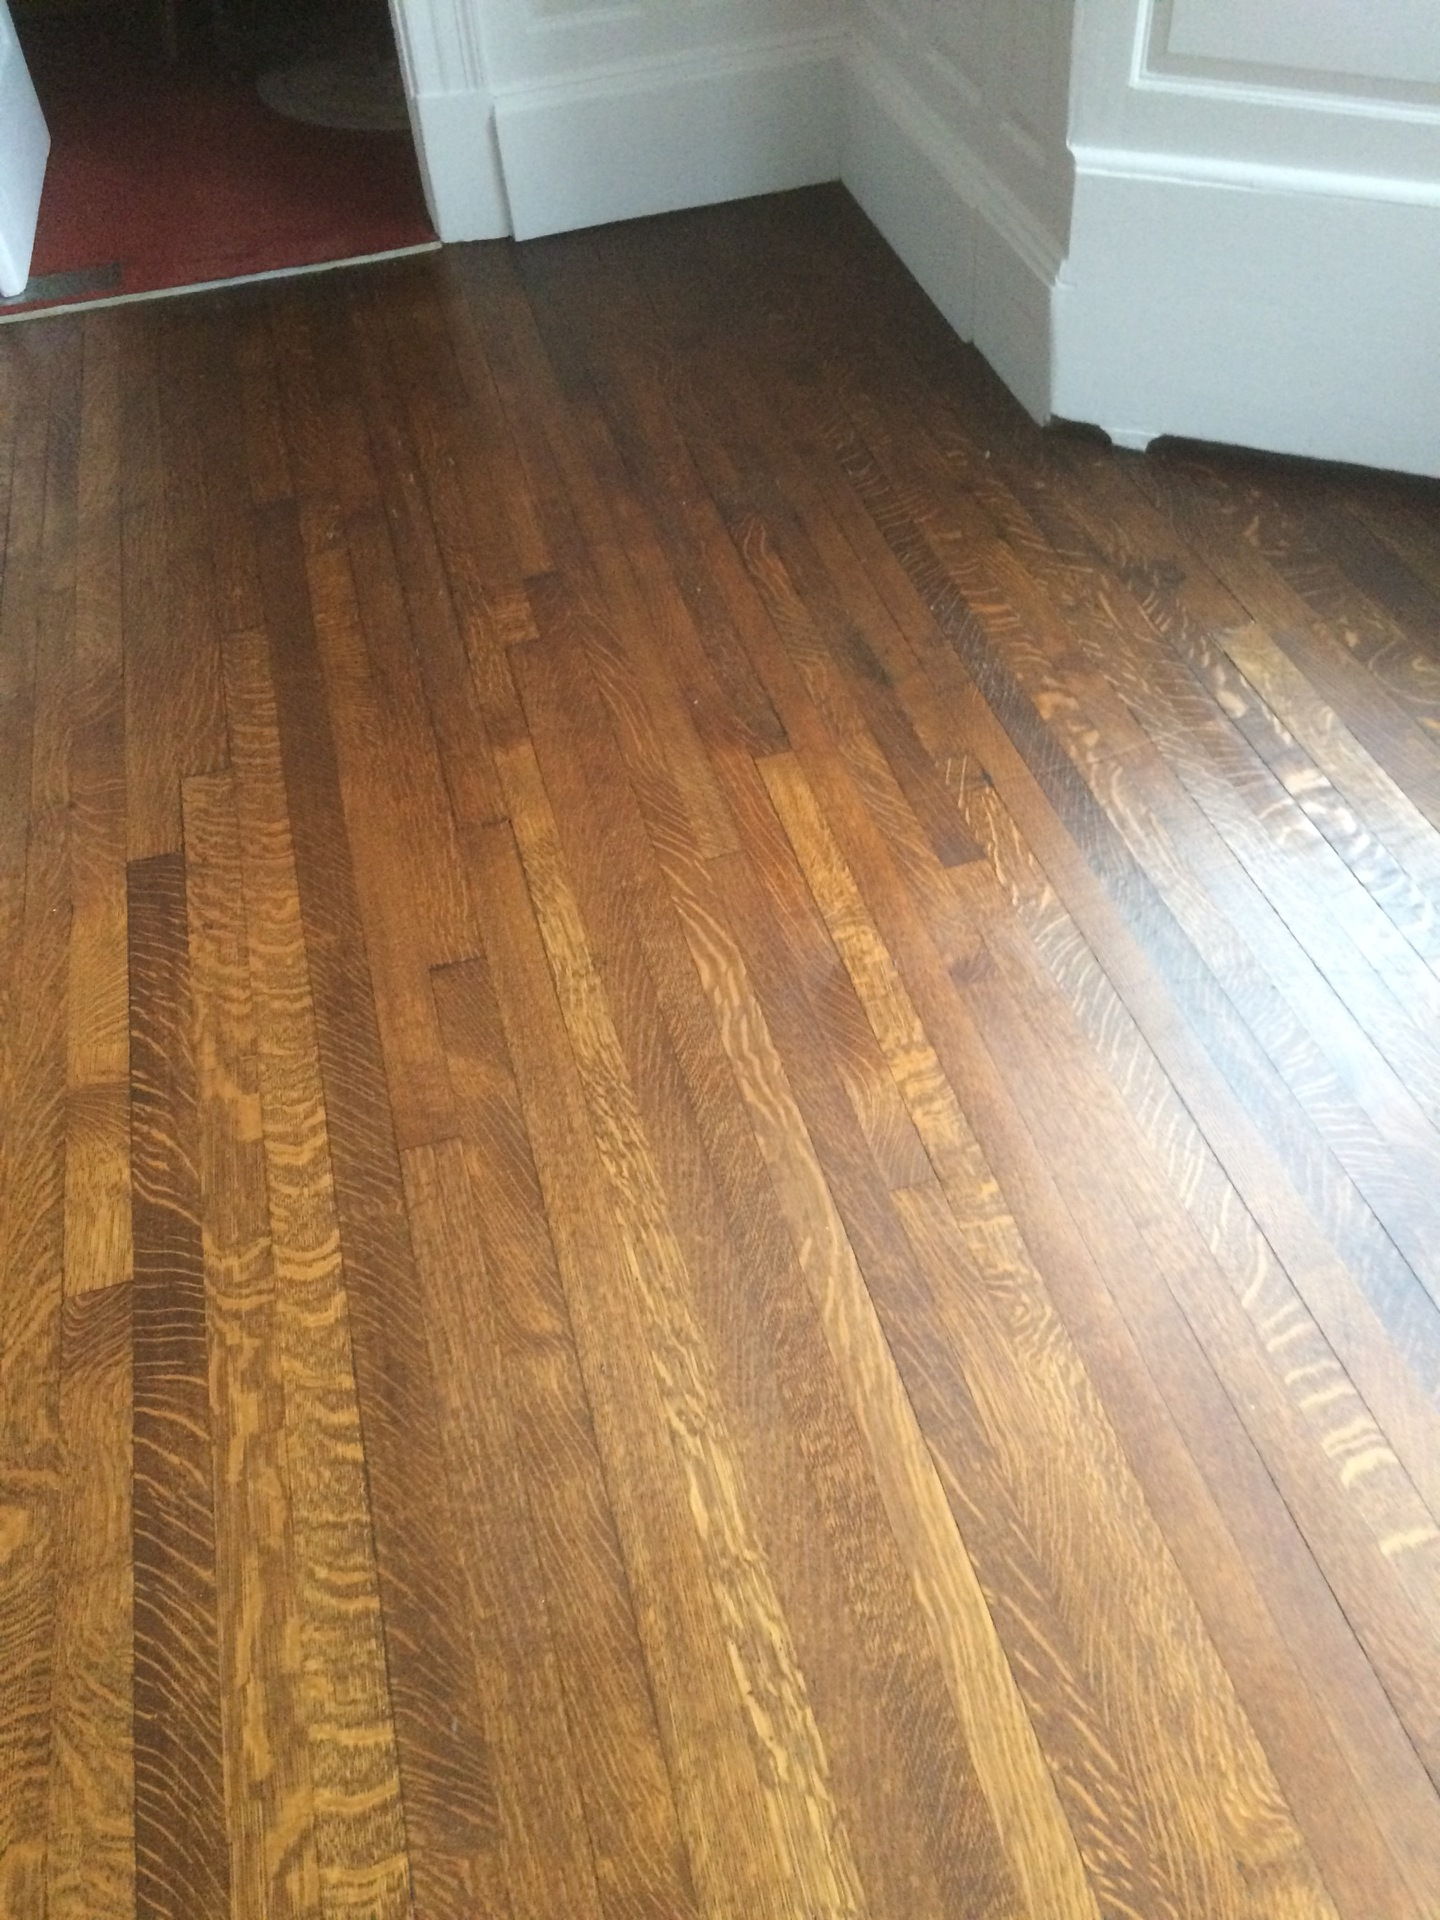 Hardwood Floor Wax stripping and waxing a wood floor trends floor idea Waxing Wood Floors After